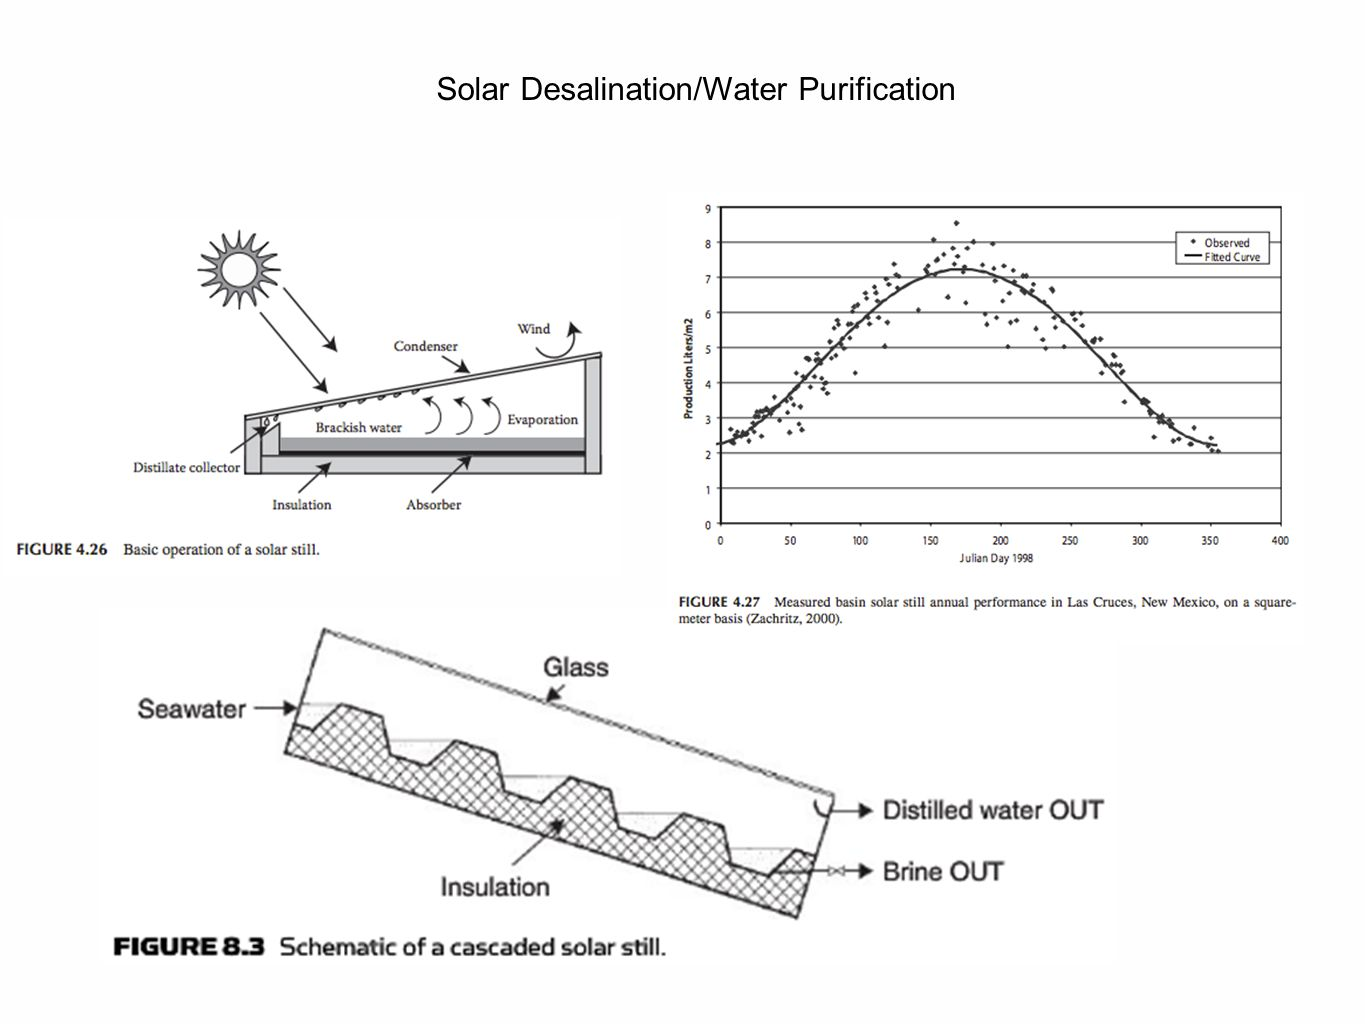 Solar Desalination/Water Purification